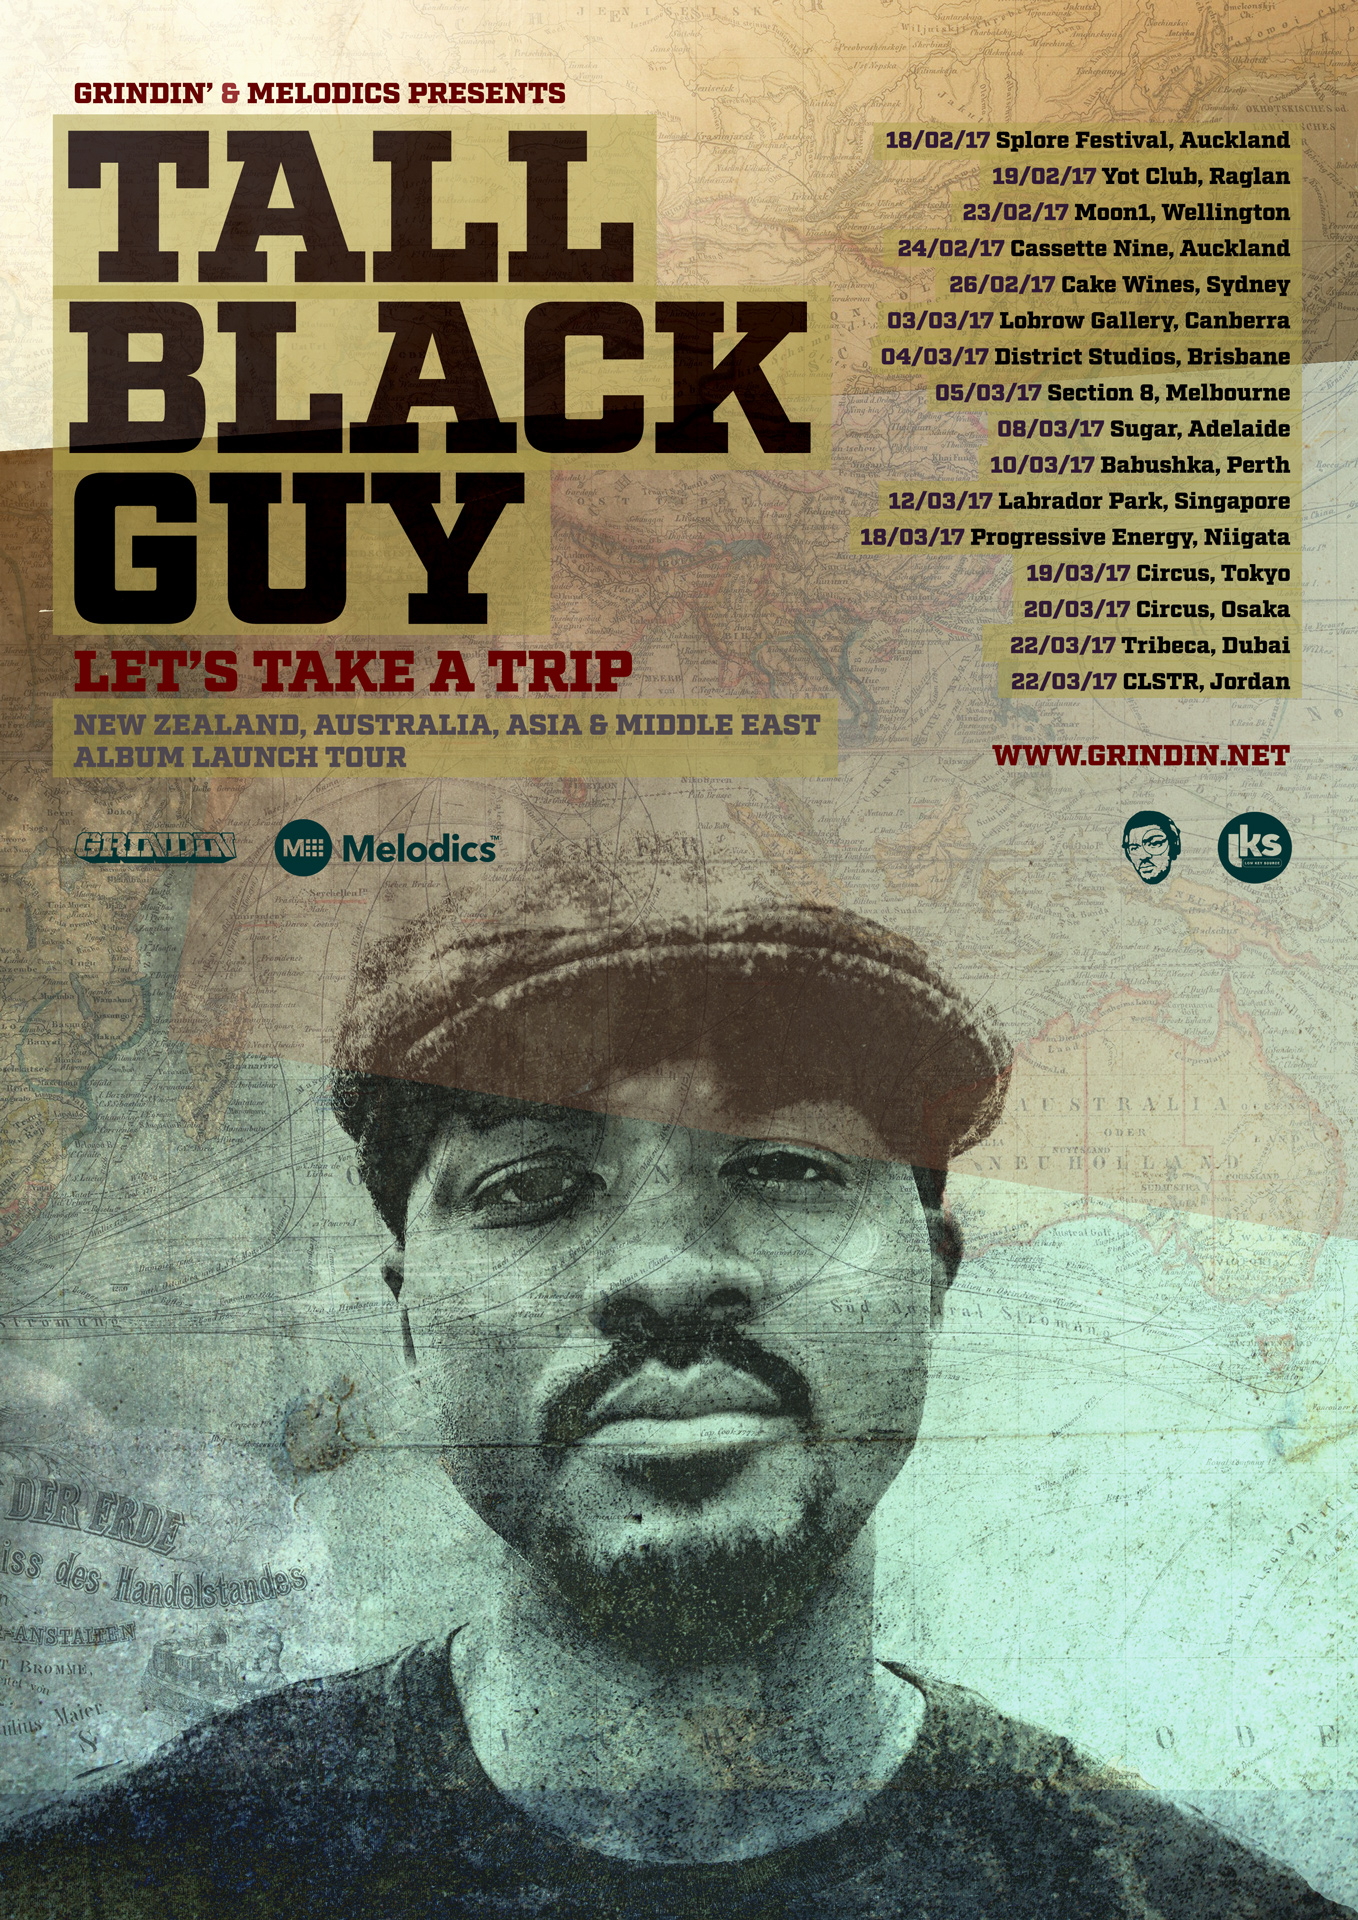 "TALL BLACK GUY ""LET'S TAKE A TRIP"" NEW ZEALAND / AUSTRALIA / ASIA & MIDDLE EAST ALBUM LAUNCH TOUR"